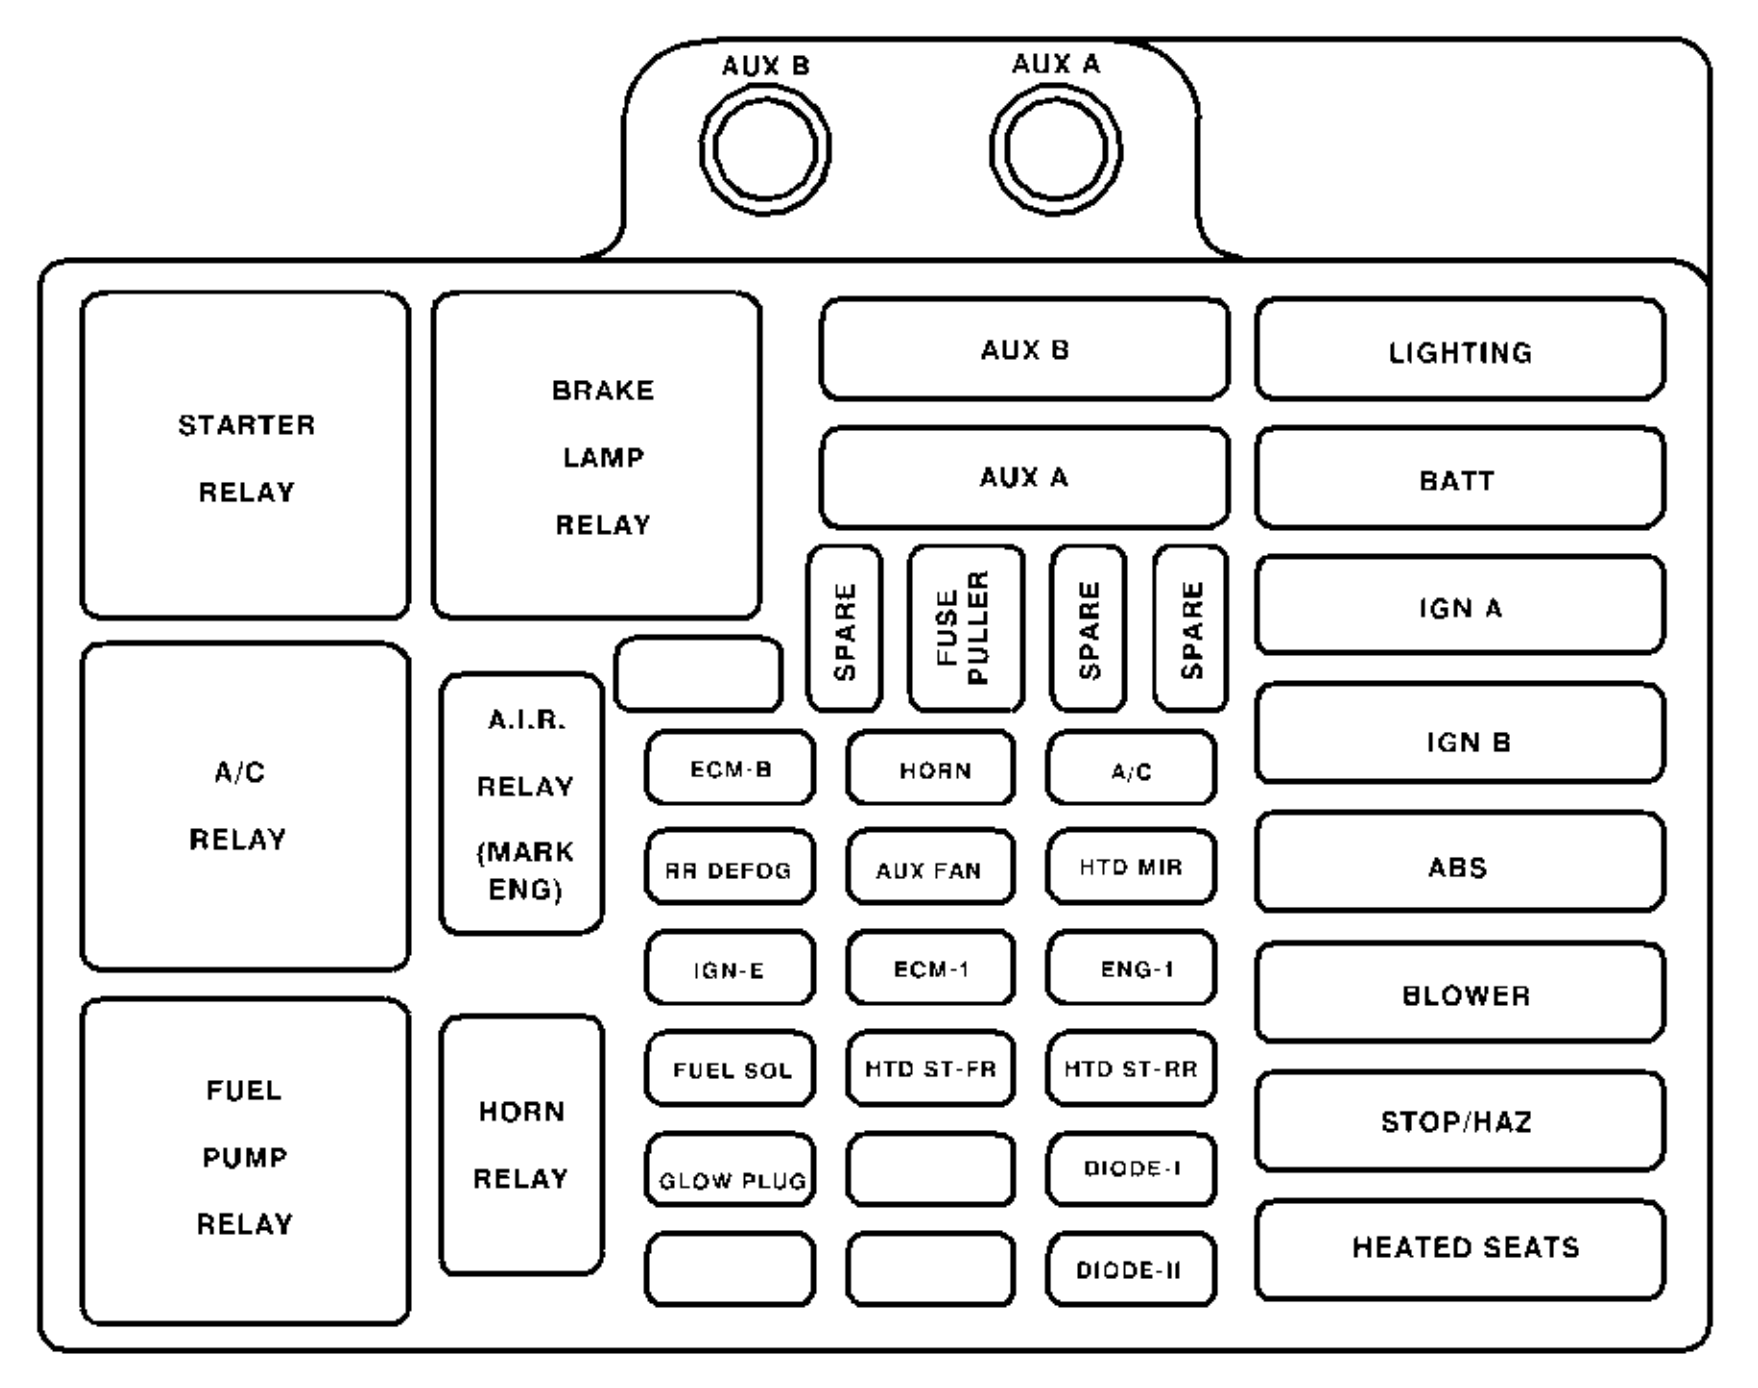 Chevrolet Fuse Box Diagram Wiring Diagrams 2007 Mustang 1997 Chevy Schematic 97 Tahoe